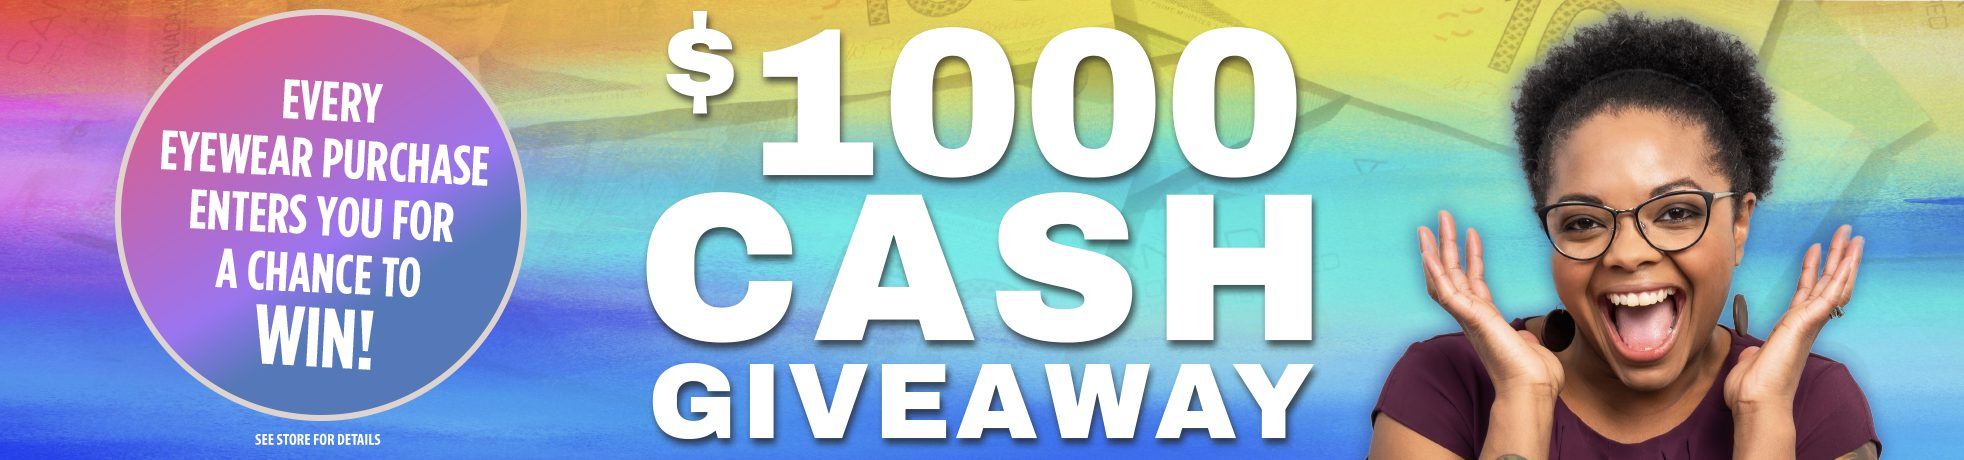 $1000 Giveaway!